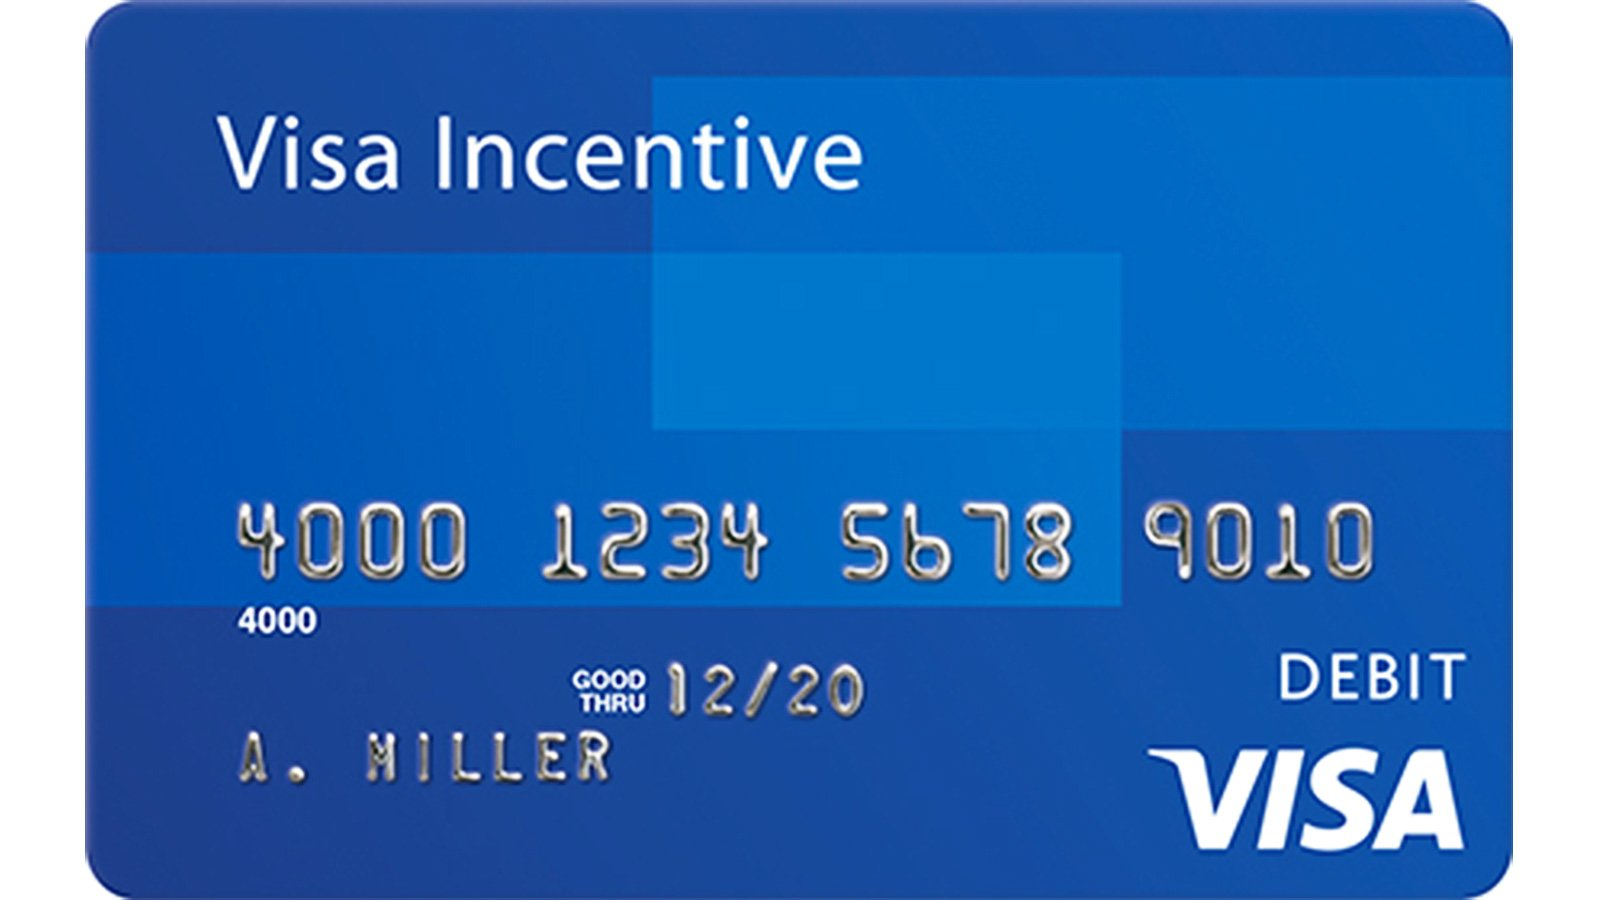 Visa Incentive card sample.